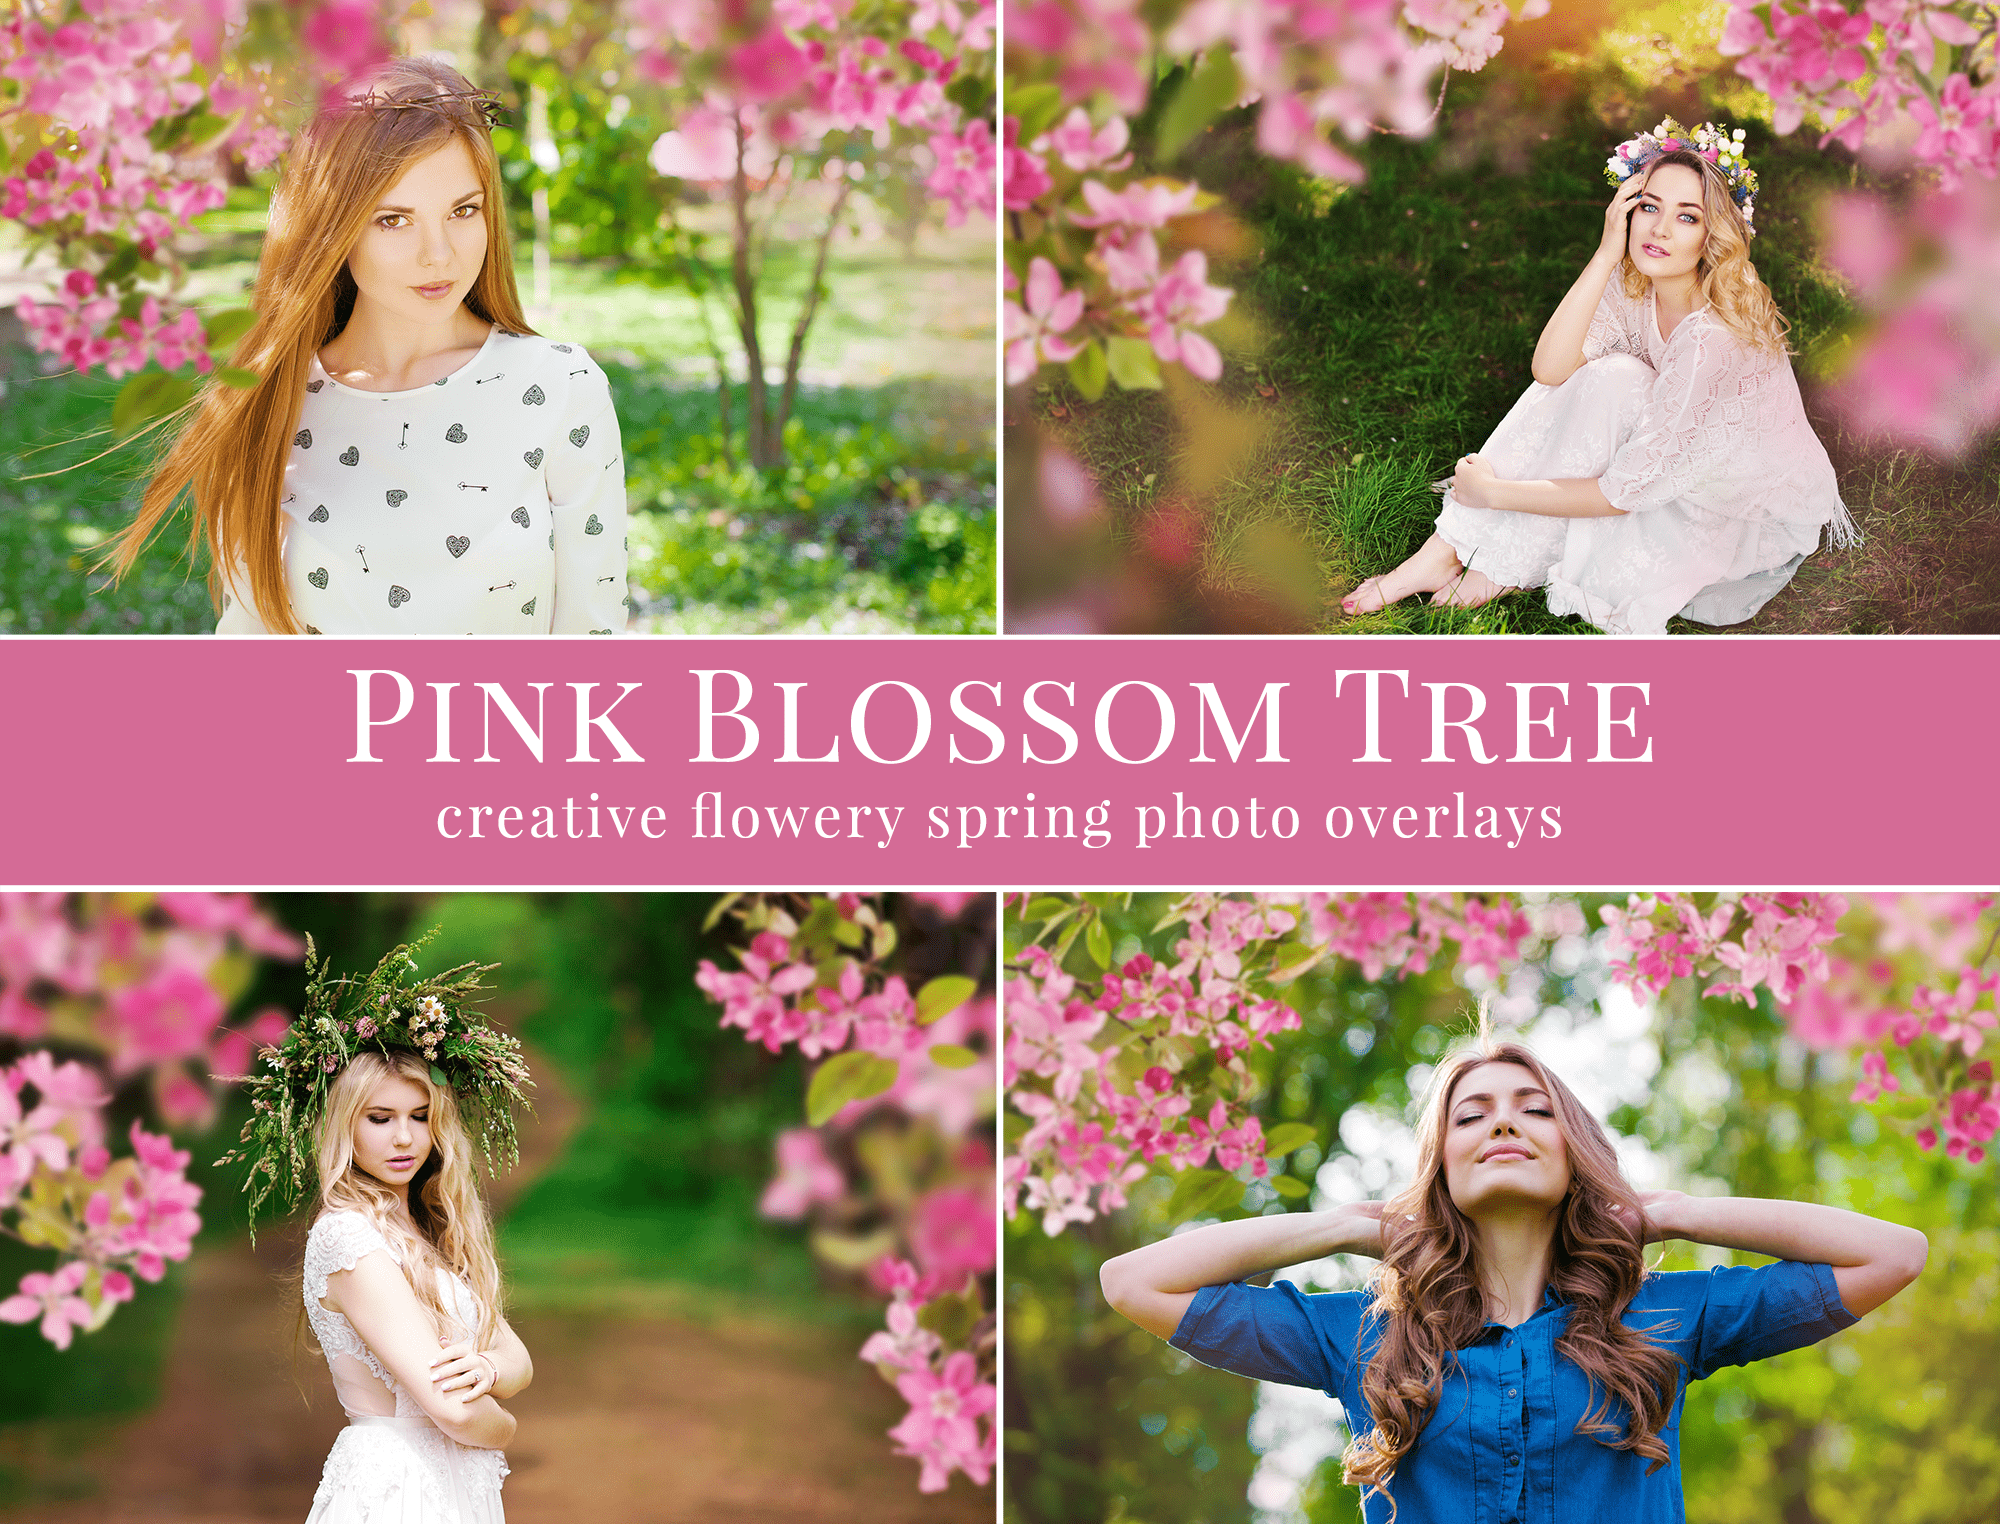 blossom tree spring photo overlays